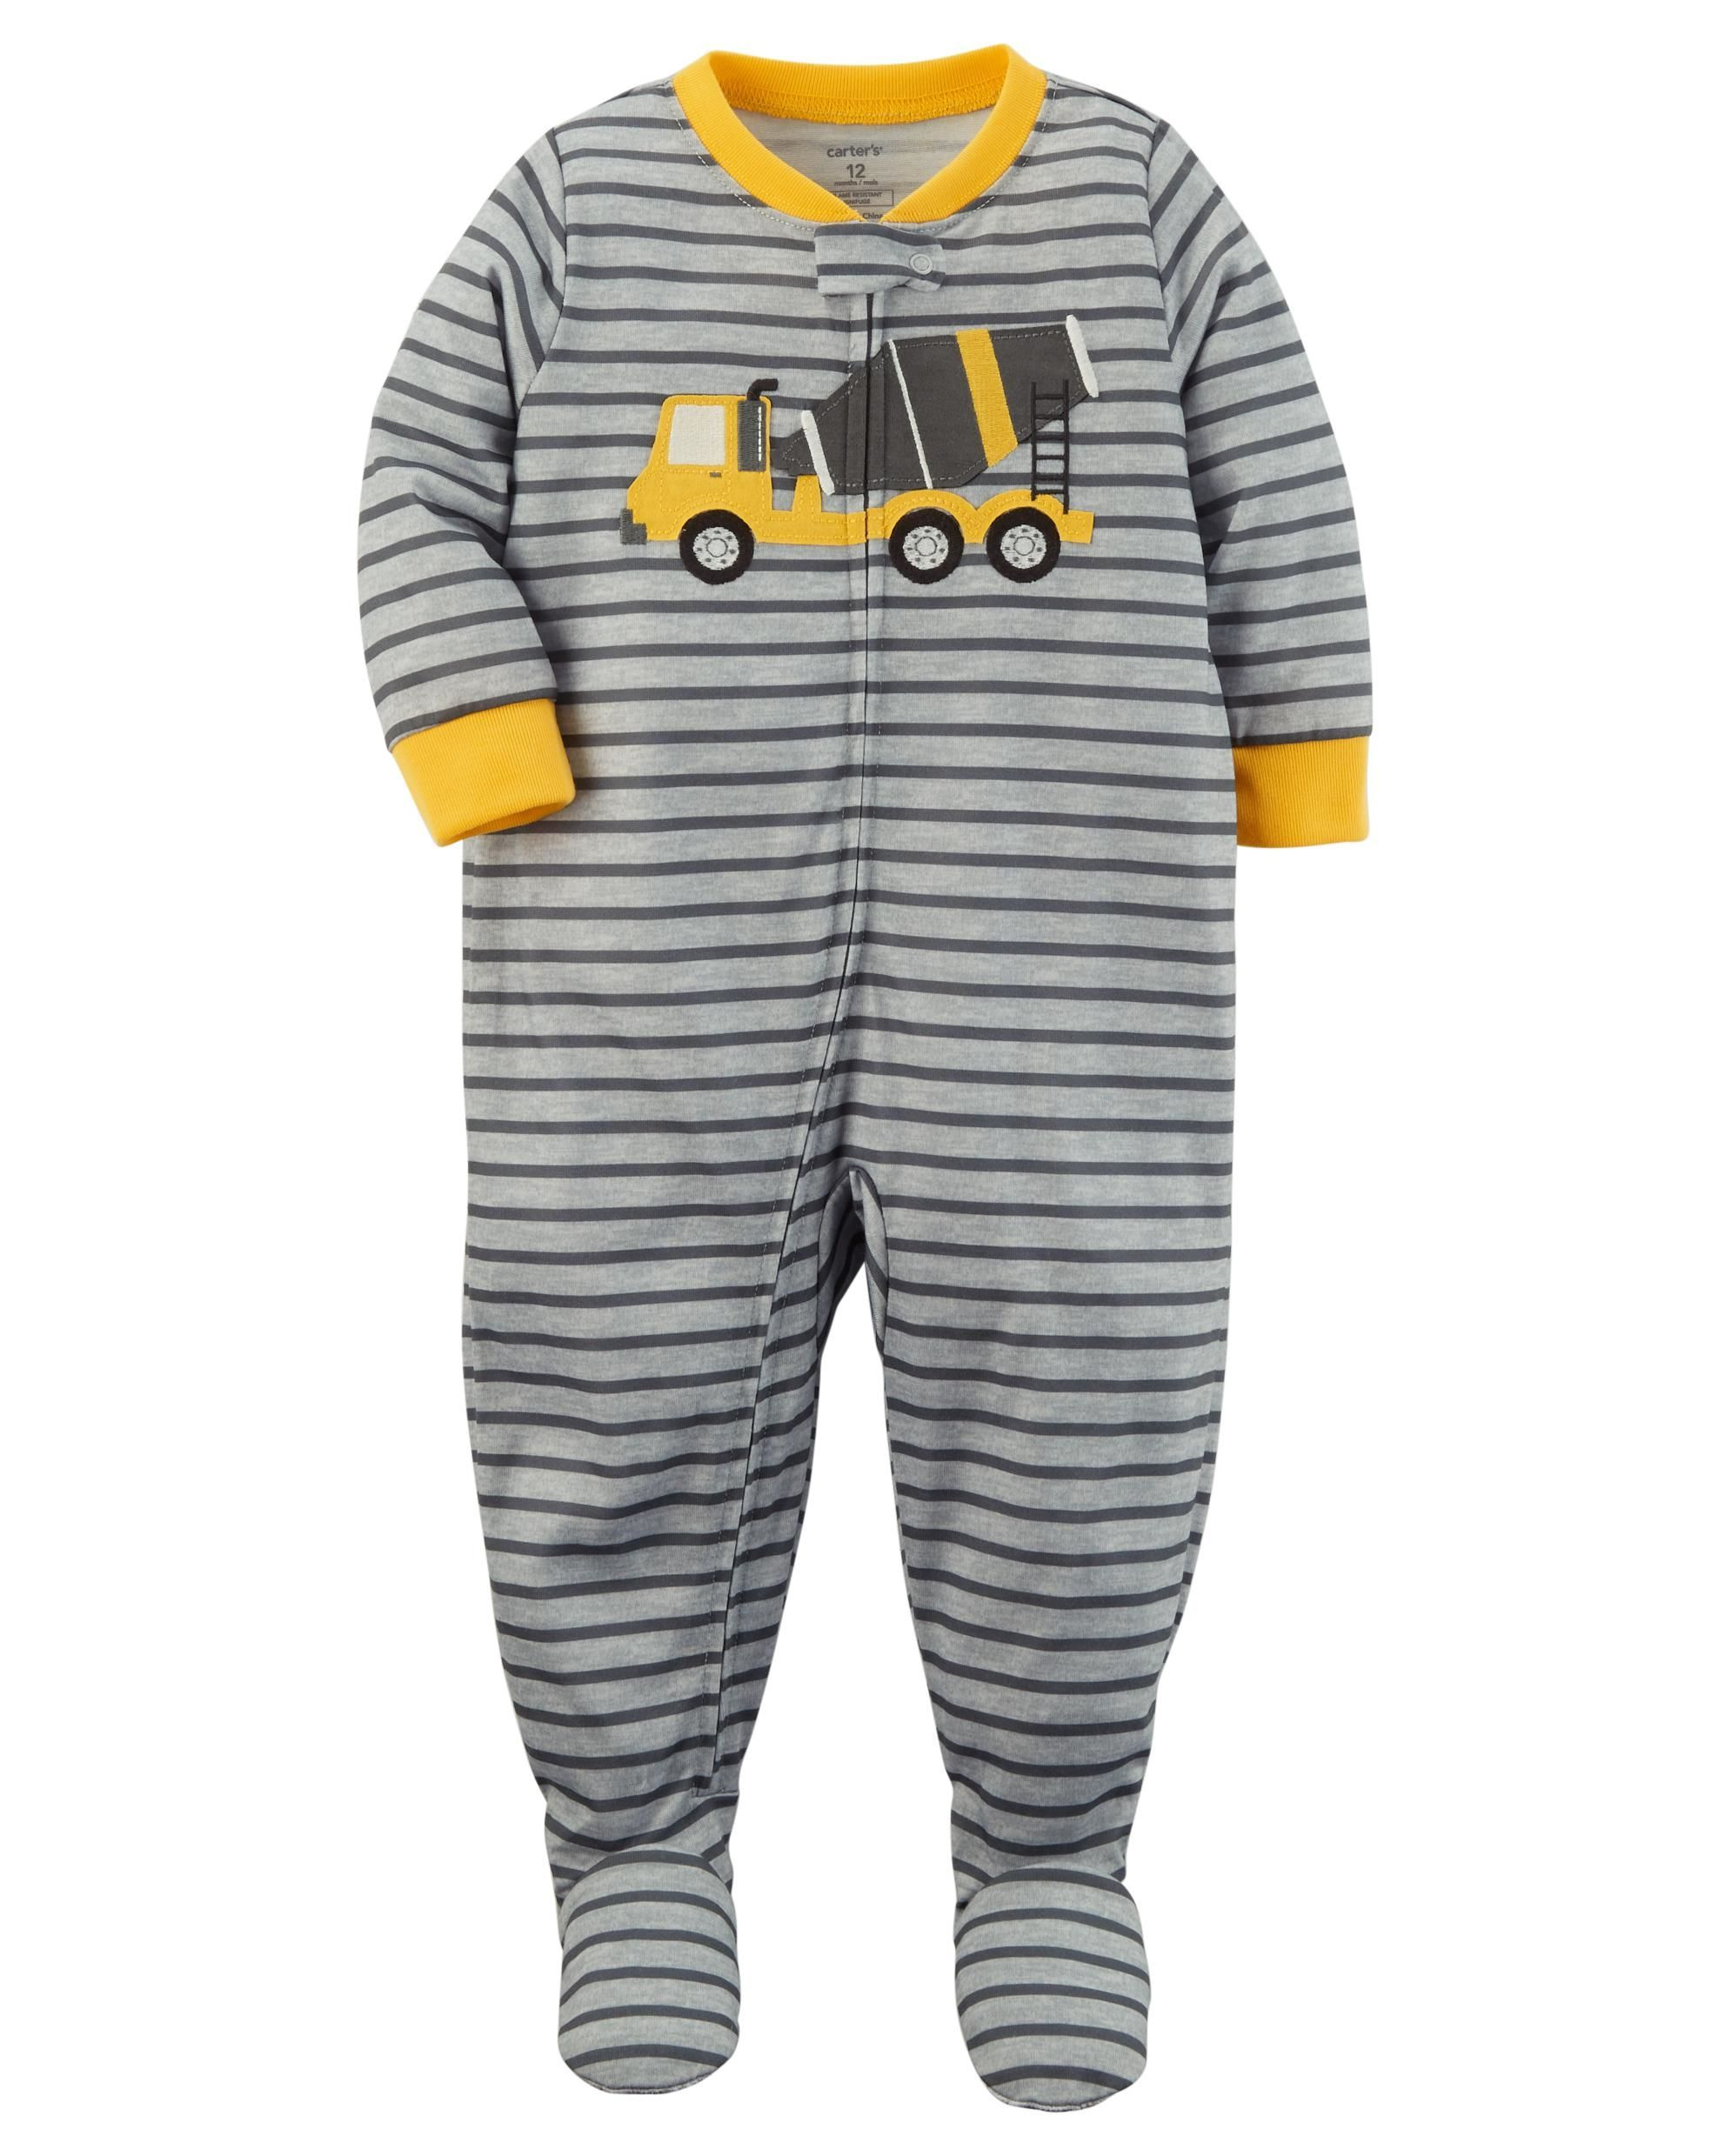 731fd3c40 Baby Boy 1-Piece Construction Snug Fit Cotton PJs